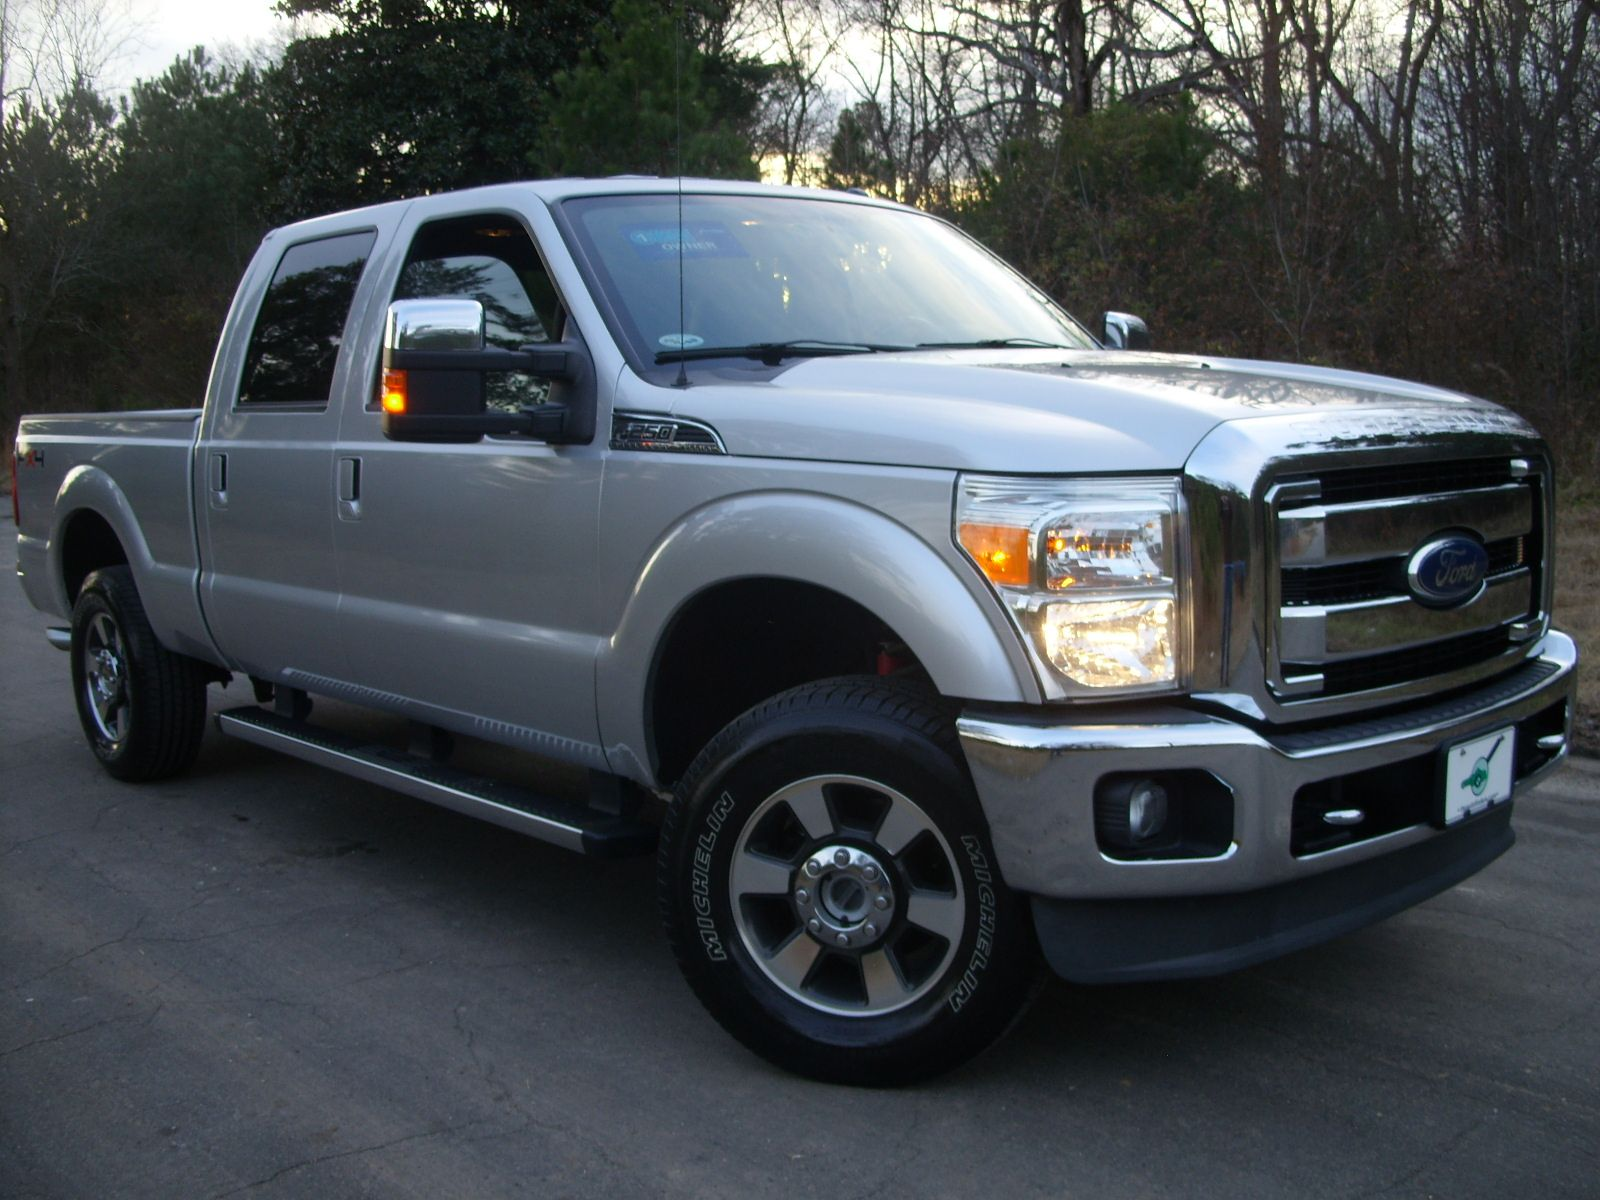 Used 2011 Ford F 250 For Sale Durham Nc The Auto Finders 919 957 0156 Www Theautofinders Com Volvo Dealership Ford F250